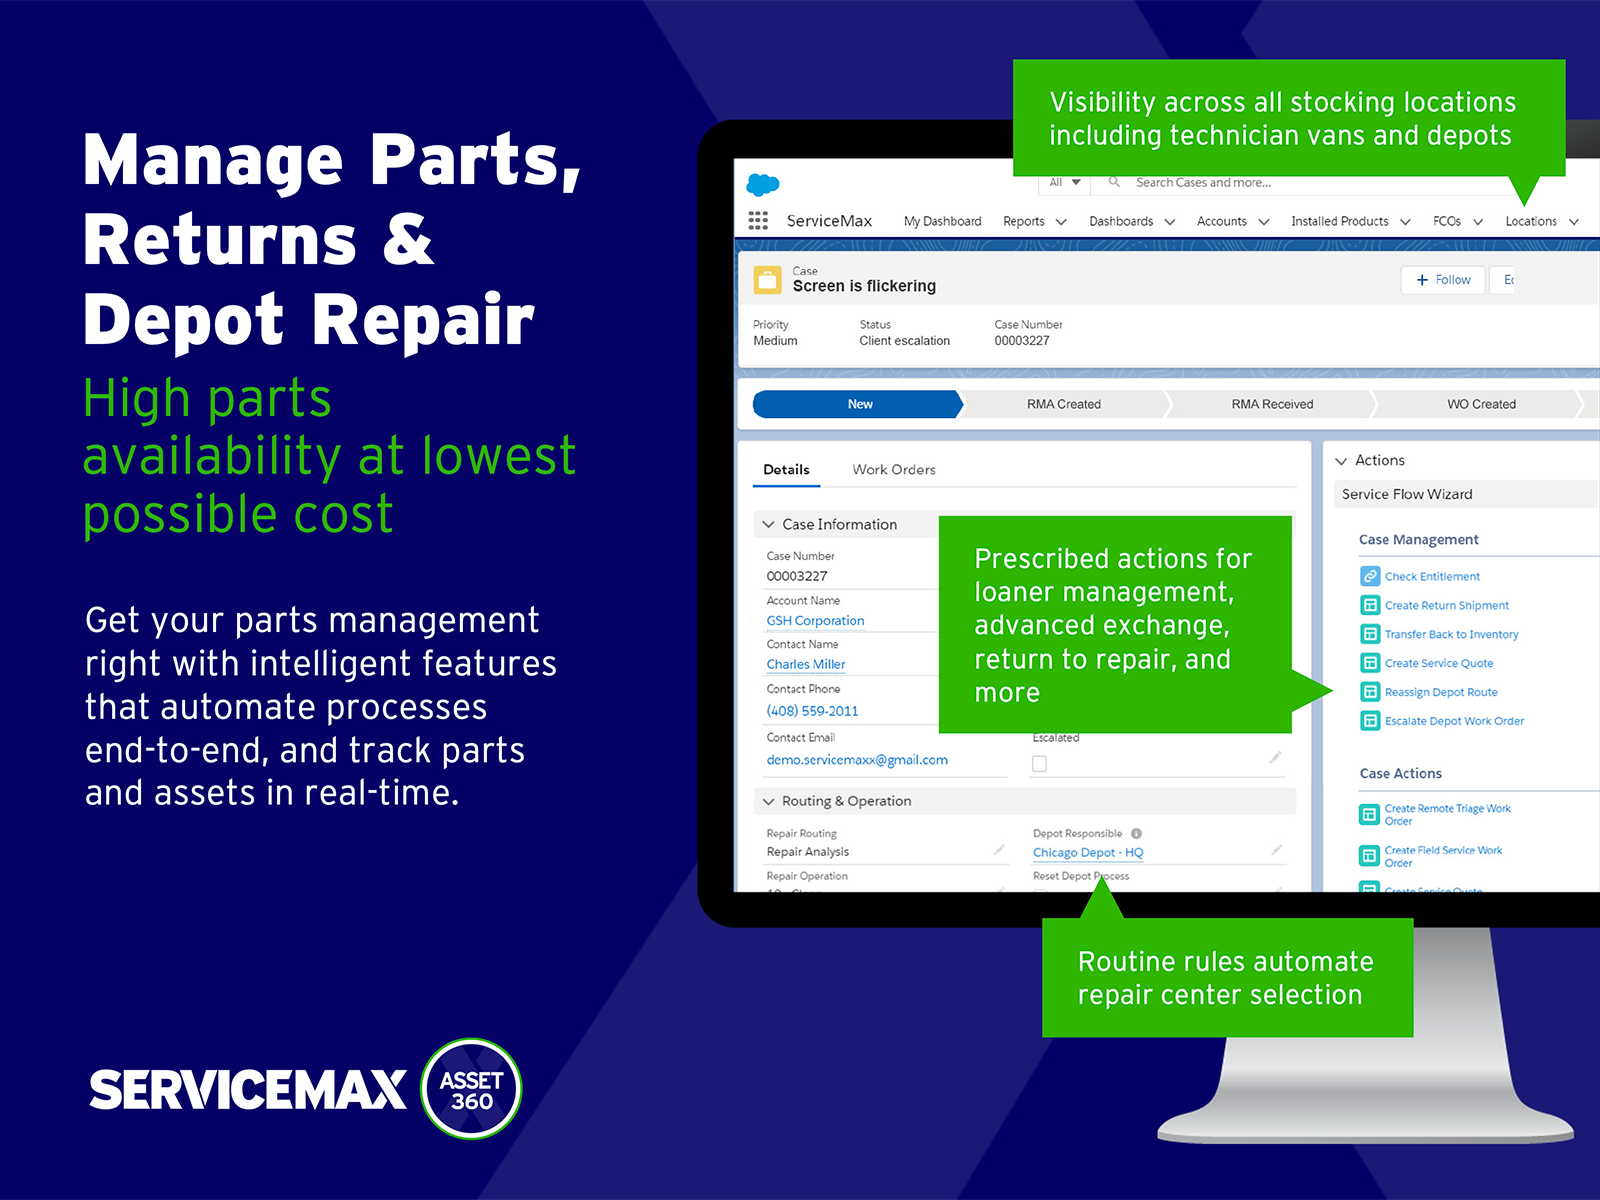 ServiceMax Software - Make your inventory processes more efficient with spare parts, returns and depot repair management with ServiceMax Asset 360.